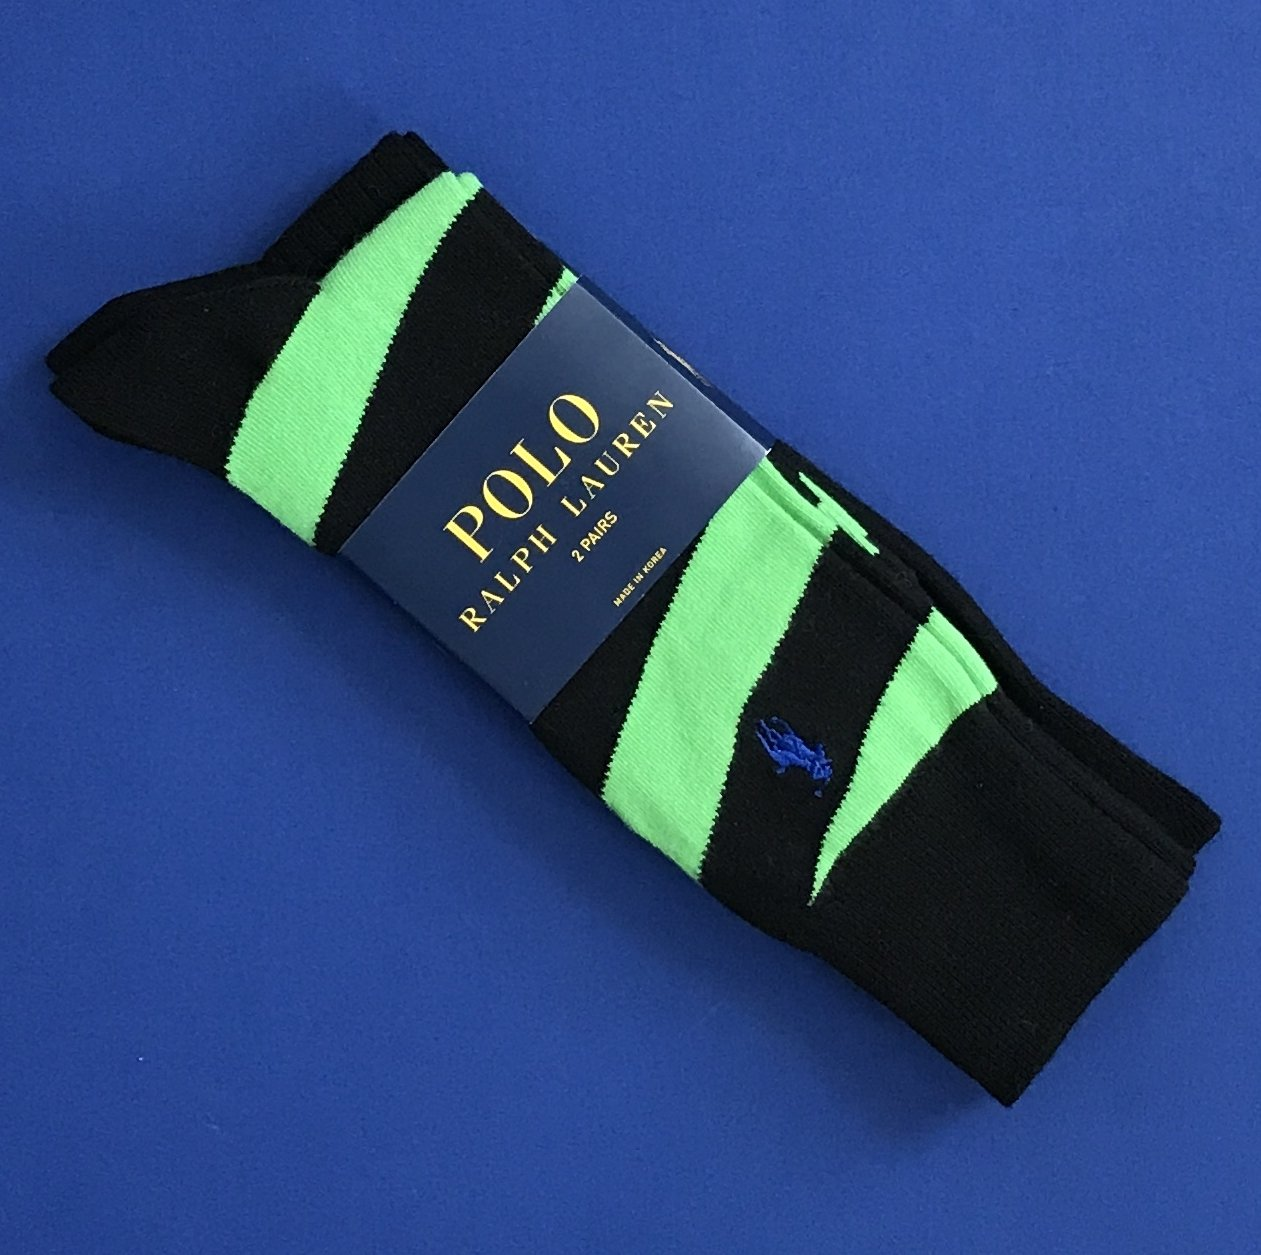 NWT Polo Ralph Lauren Cotton Blend Knit Socks Two-Pack (Black & Black/Lime)